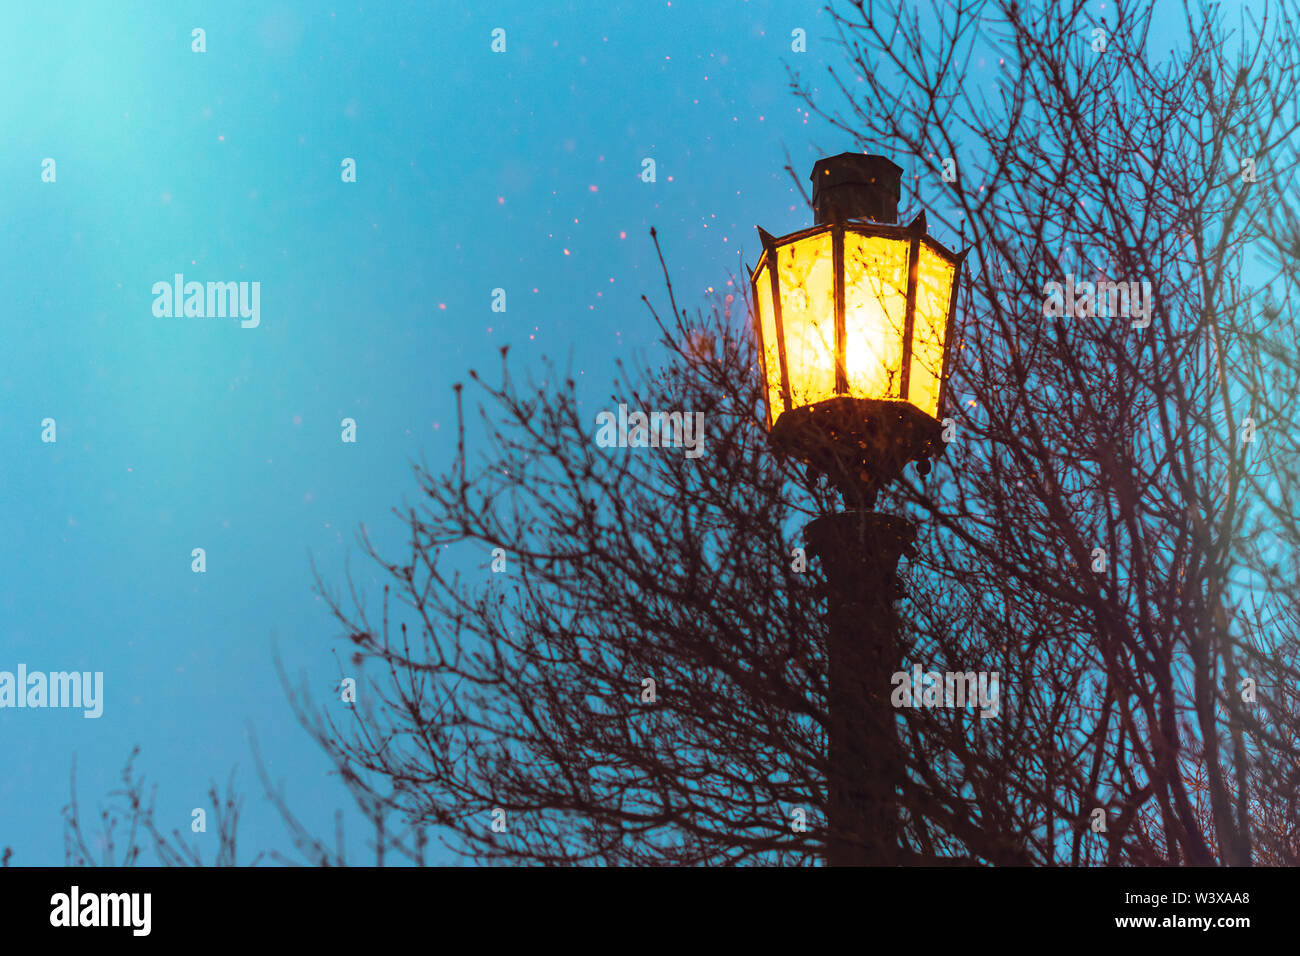 Street light, vintage gothic style with copy space. Fairy yellow light illuminates, beautiful street decoration. Clear night sky. - Stock Image